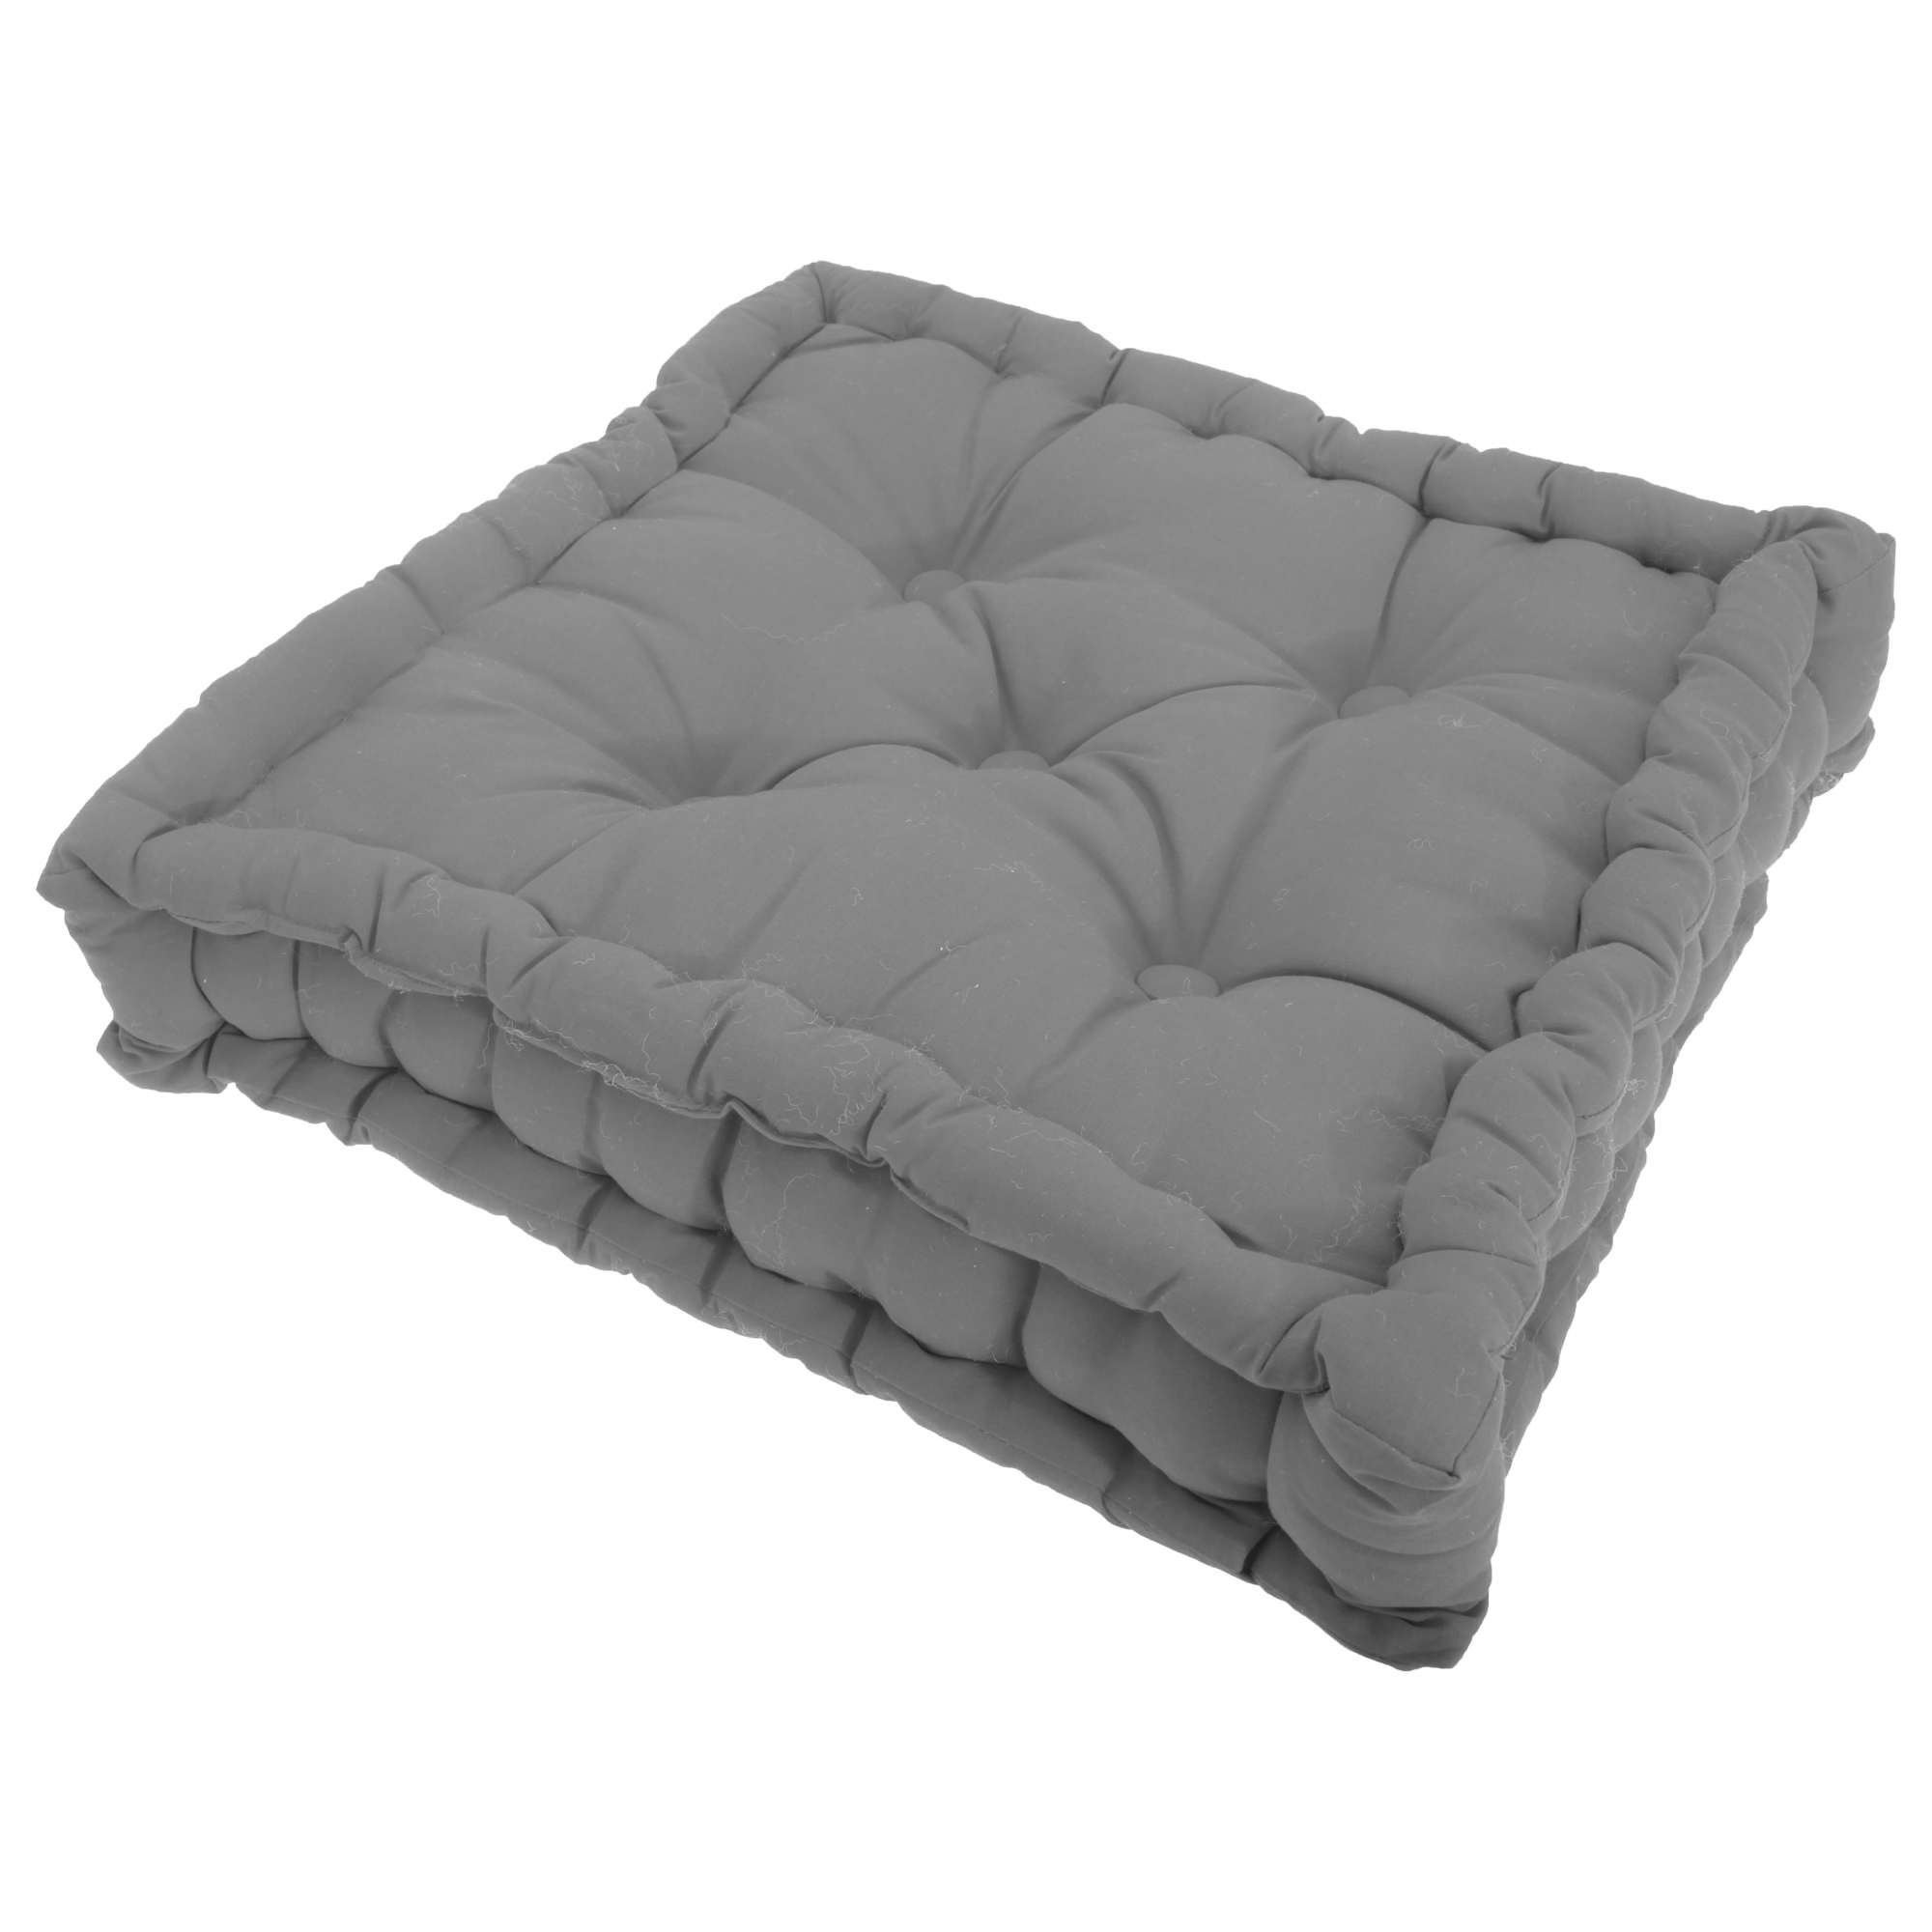 Adults Padded Armchair Booster Cushion 4 Inches High eBay : mega lutms434 5 from www.ebay.co.uk size 2000 x 2000 jpeg 796kB